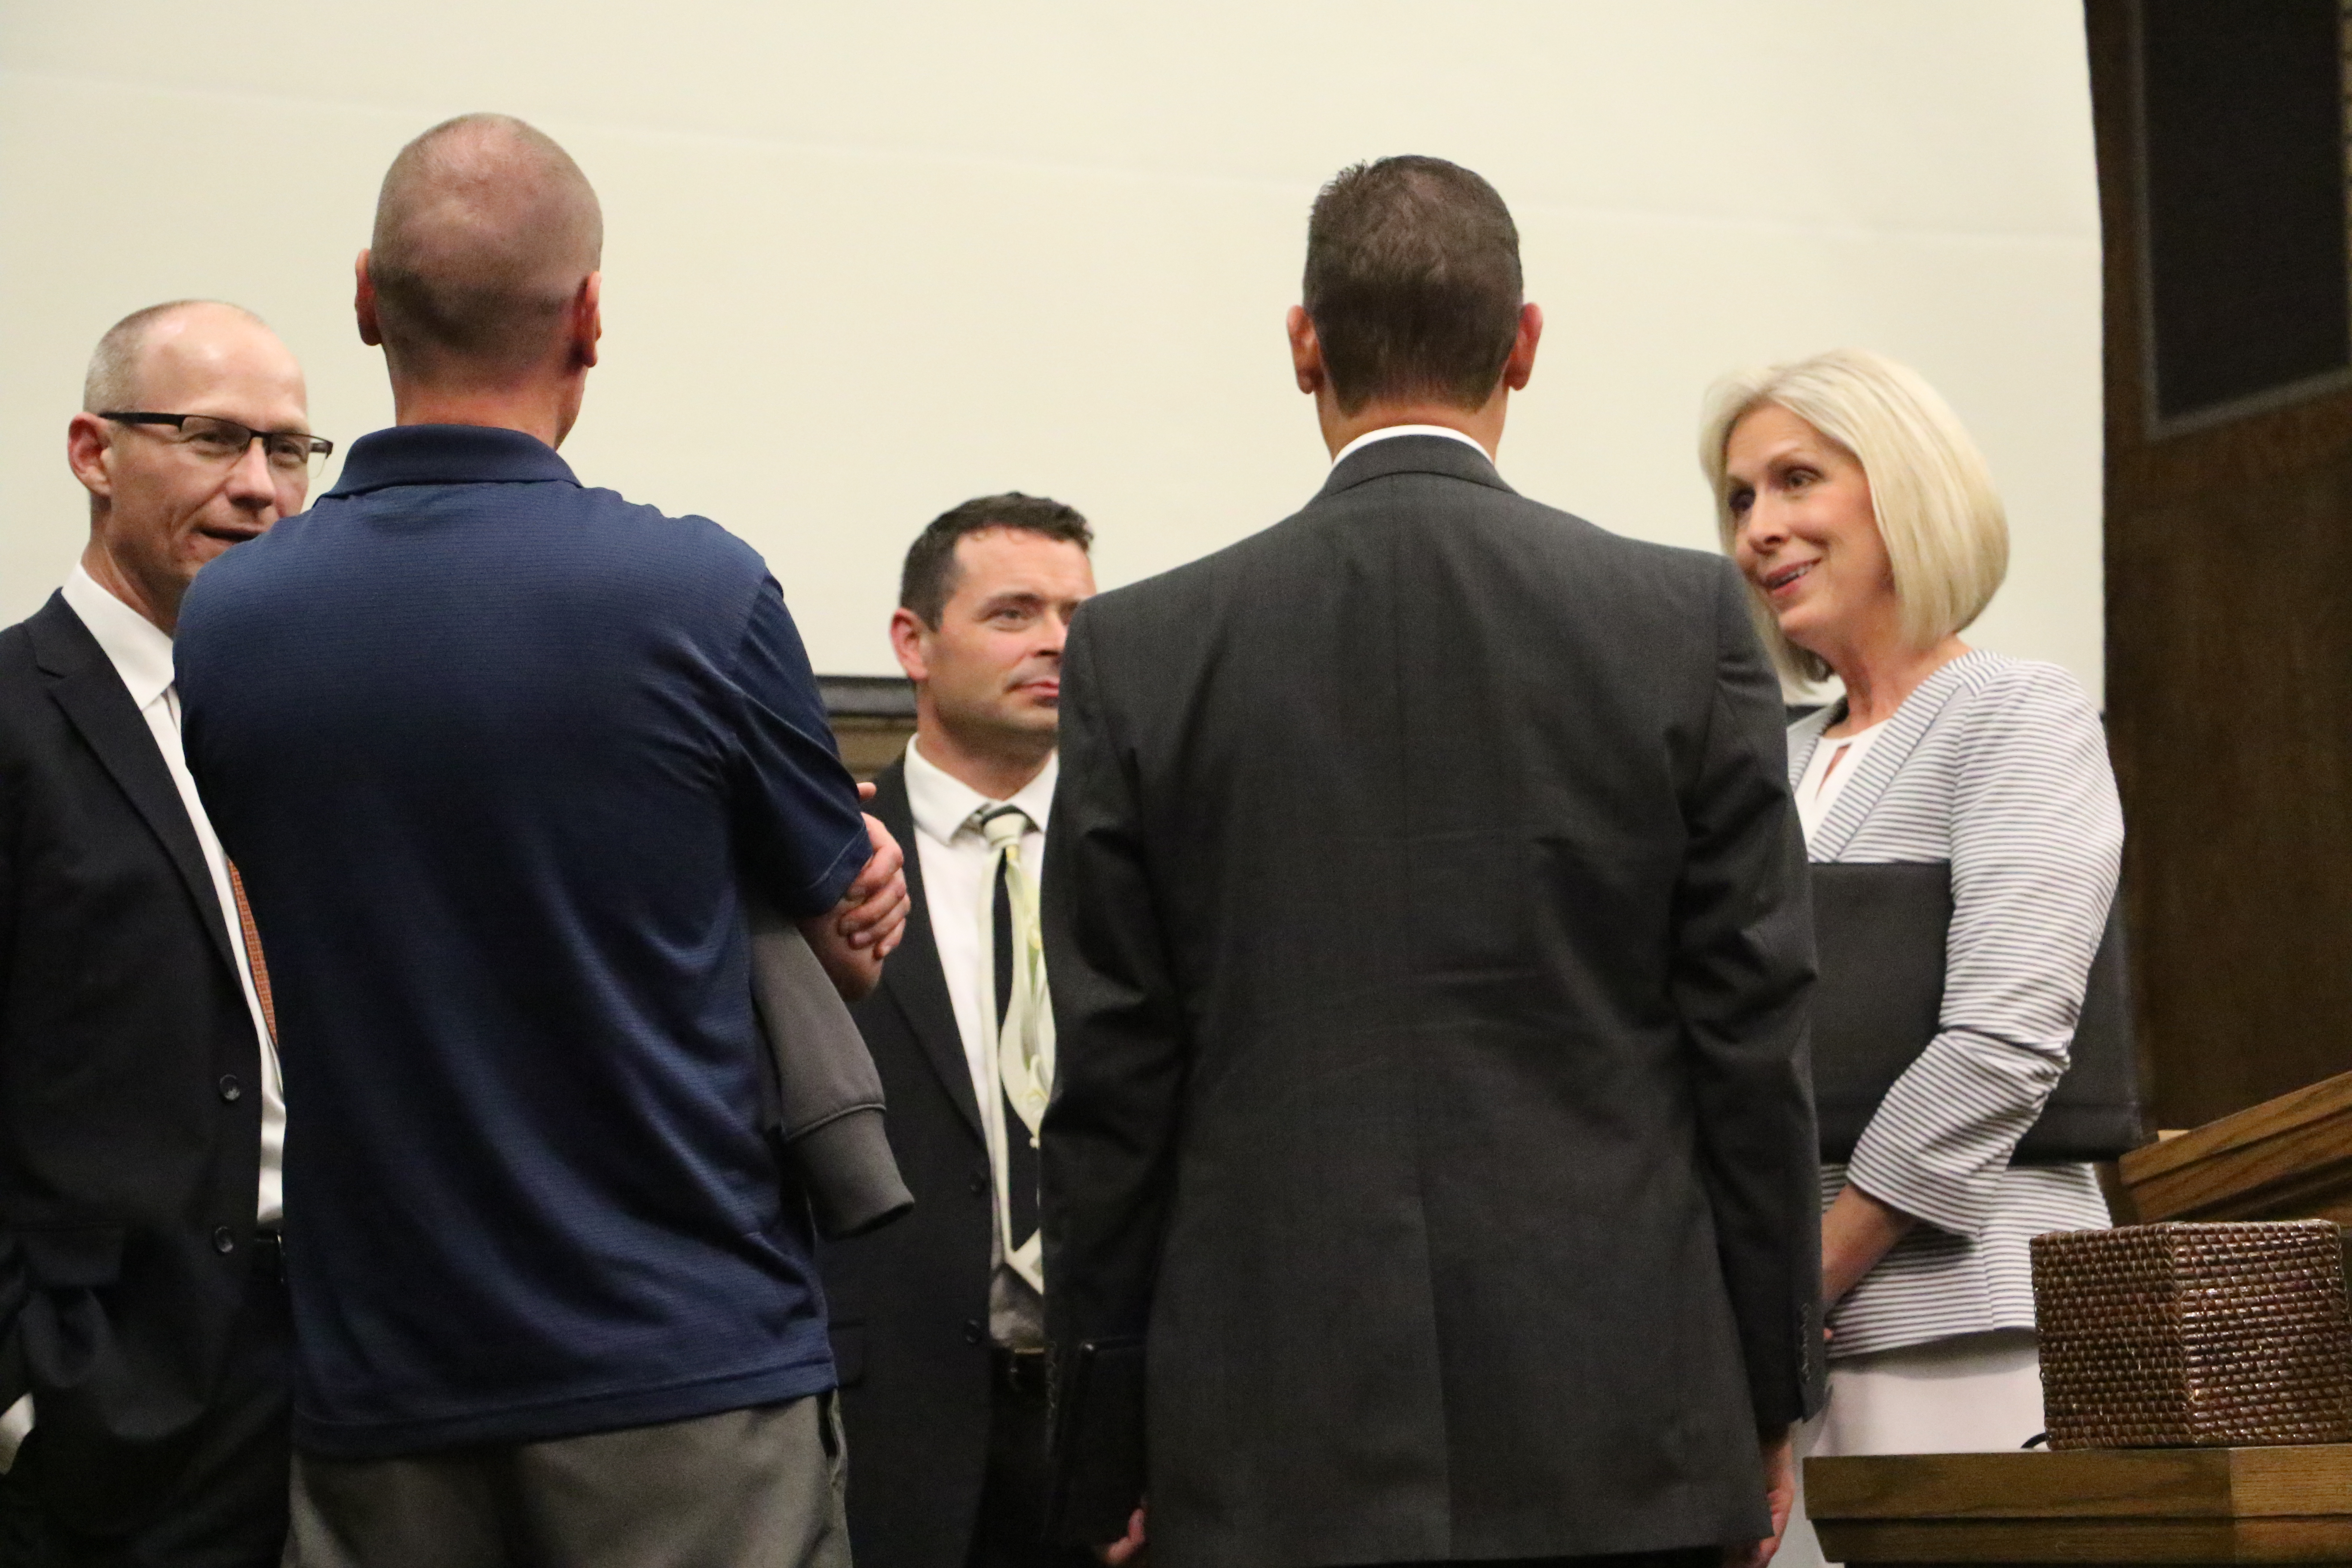 Sister Joy D. Jones speaks with Dr. Ryan S. Gardner, David Garner and others following a devotional and panel discussion on religious freedom and civic responsibility in Holladay, Utah, on Sept. 22, 2019.